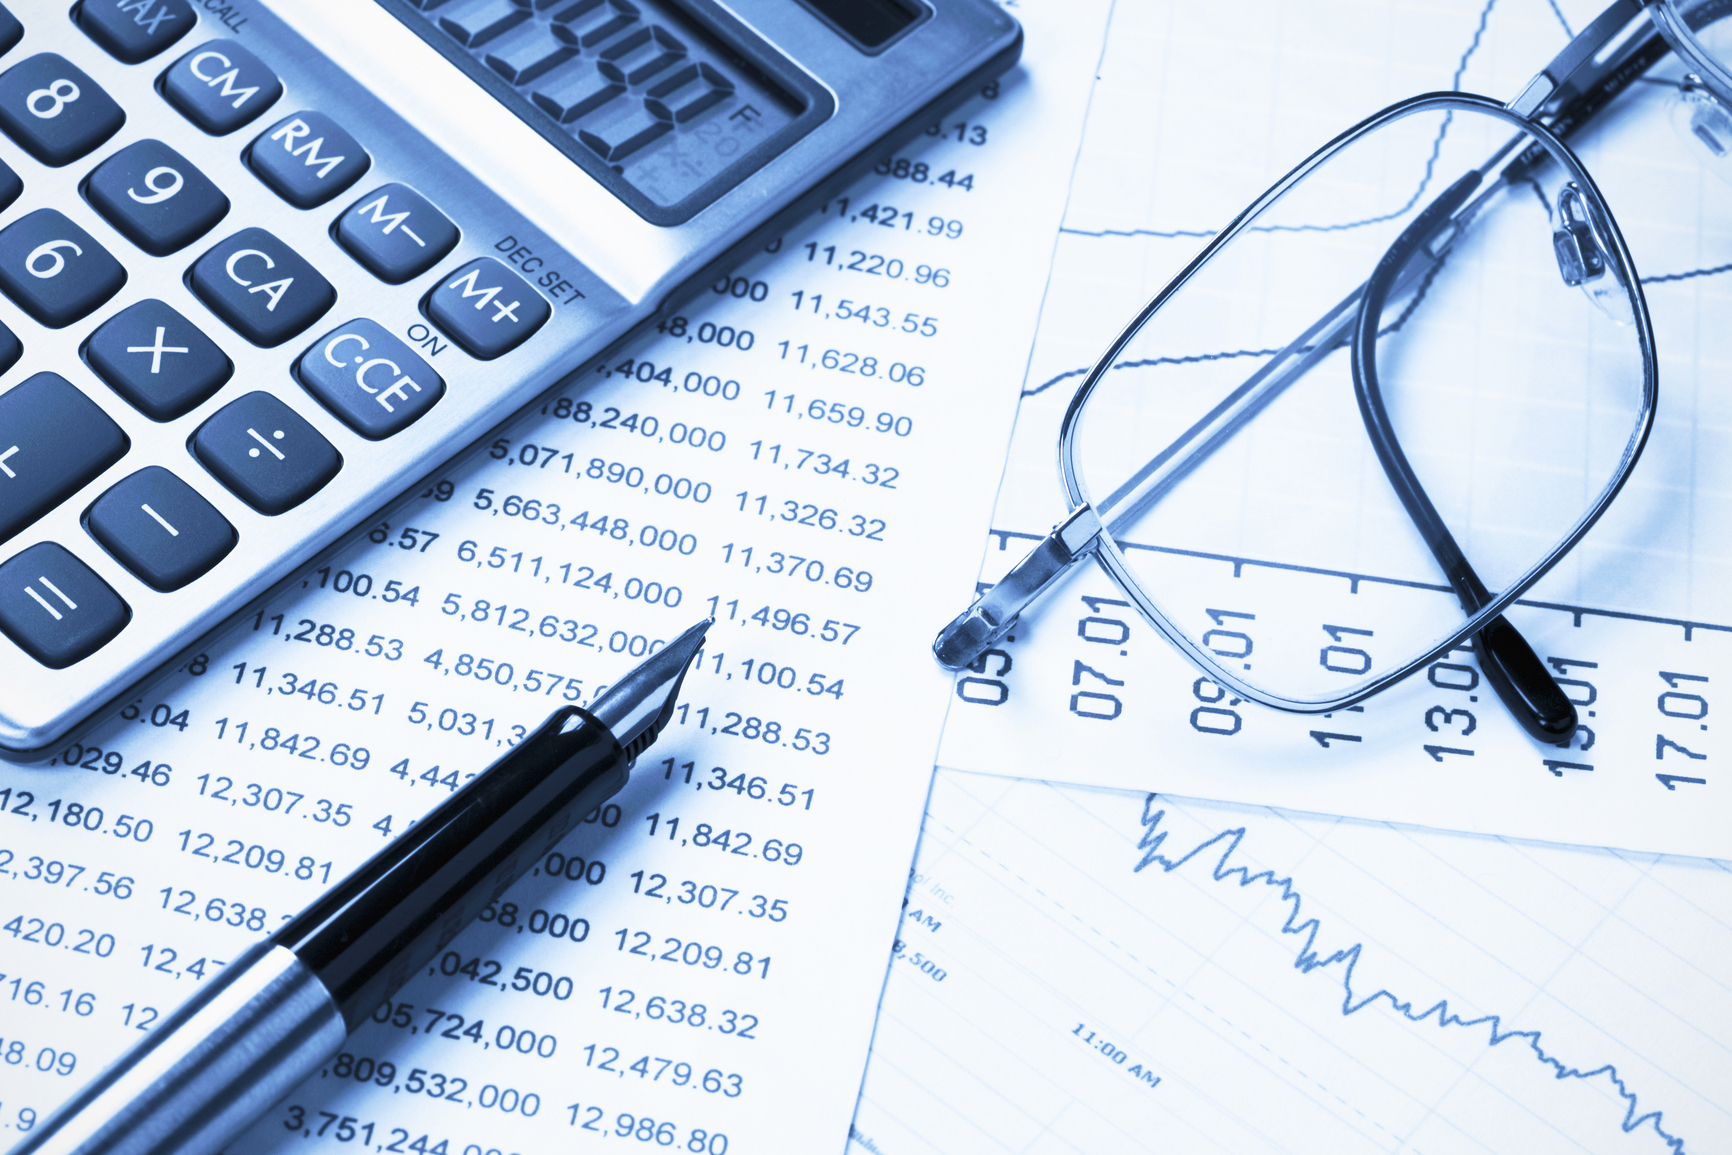 Key Mistakes To Avoid When Hiring An Accountancy Firm